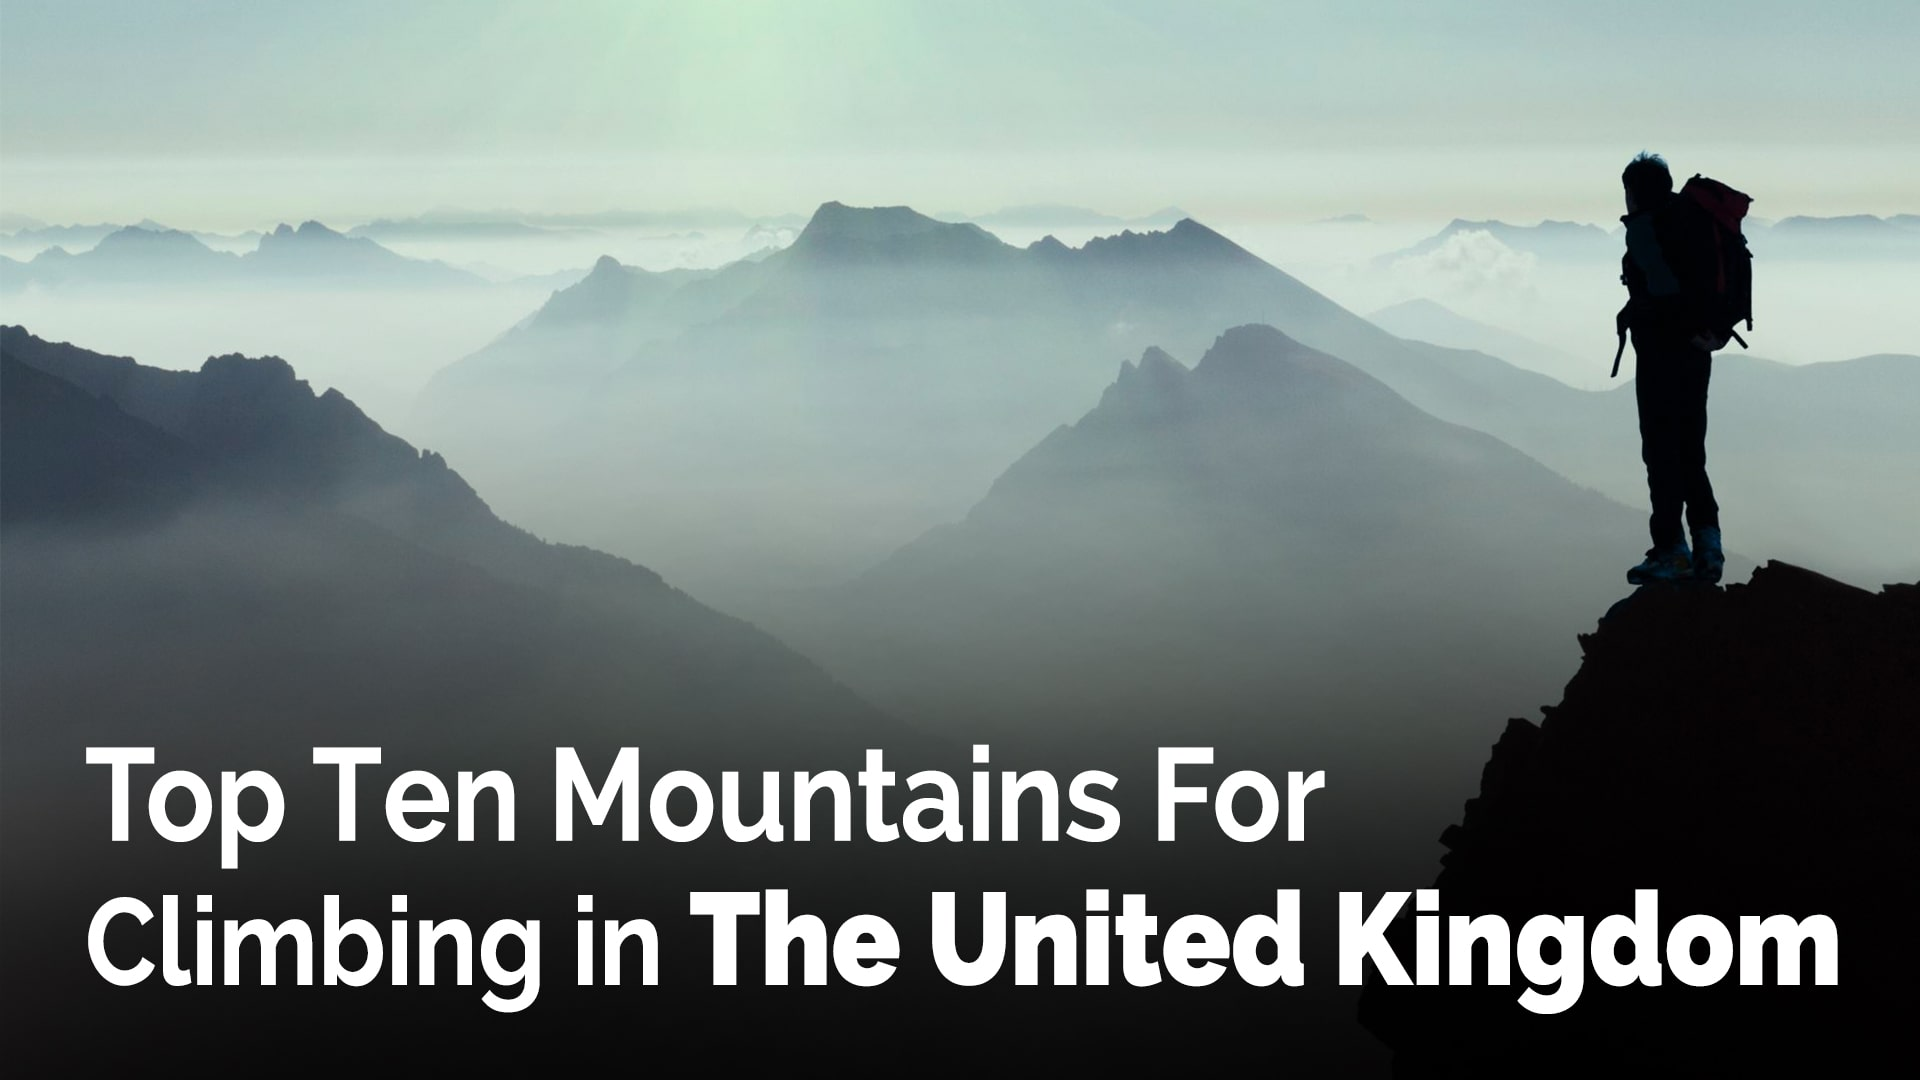 Top Ten Mountains For Climbing in The United Kingdom